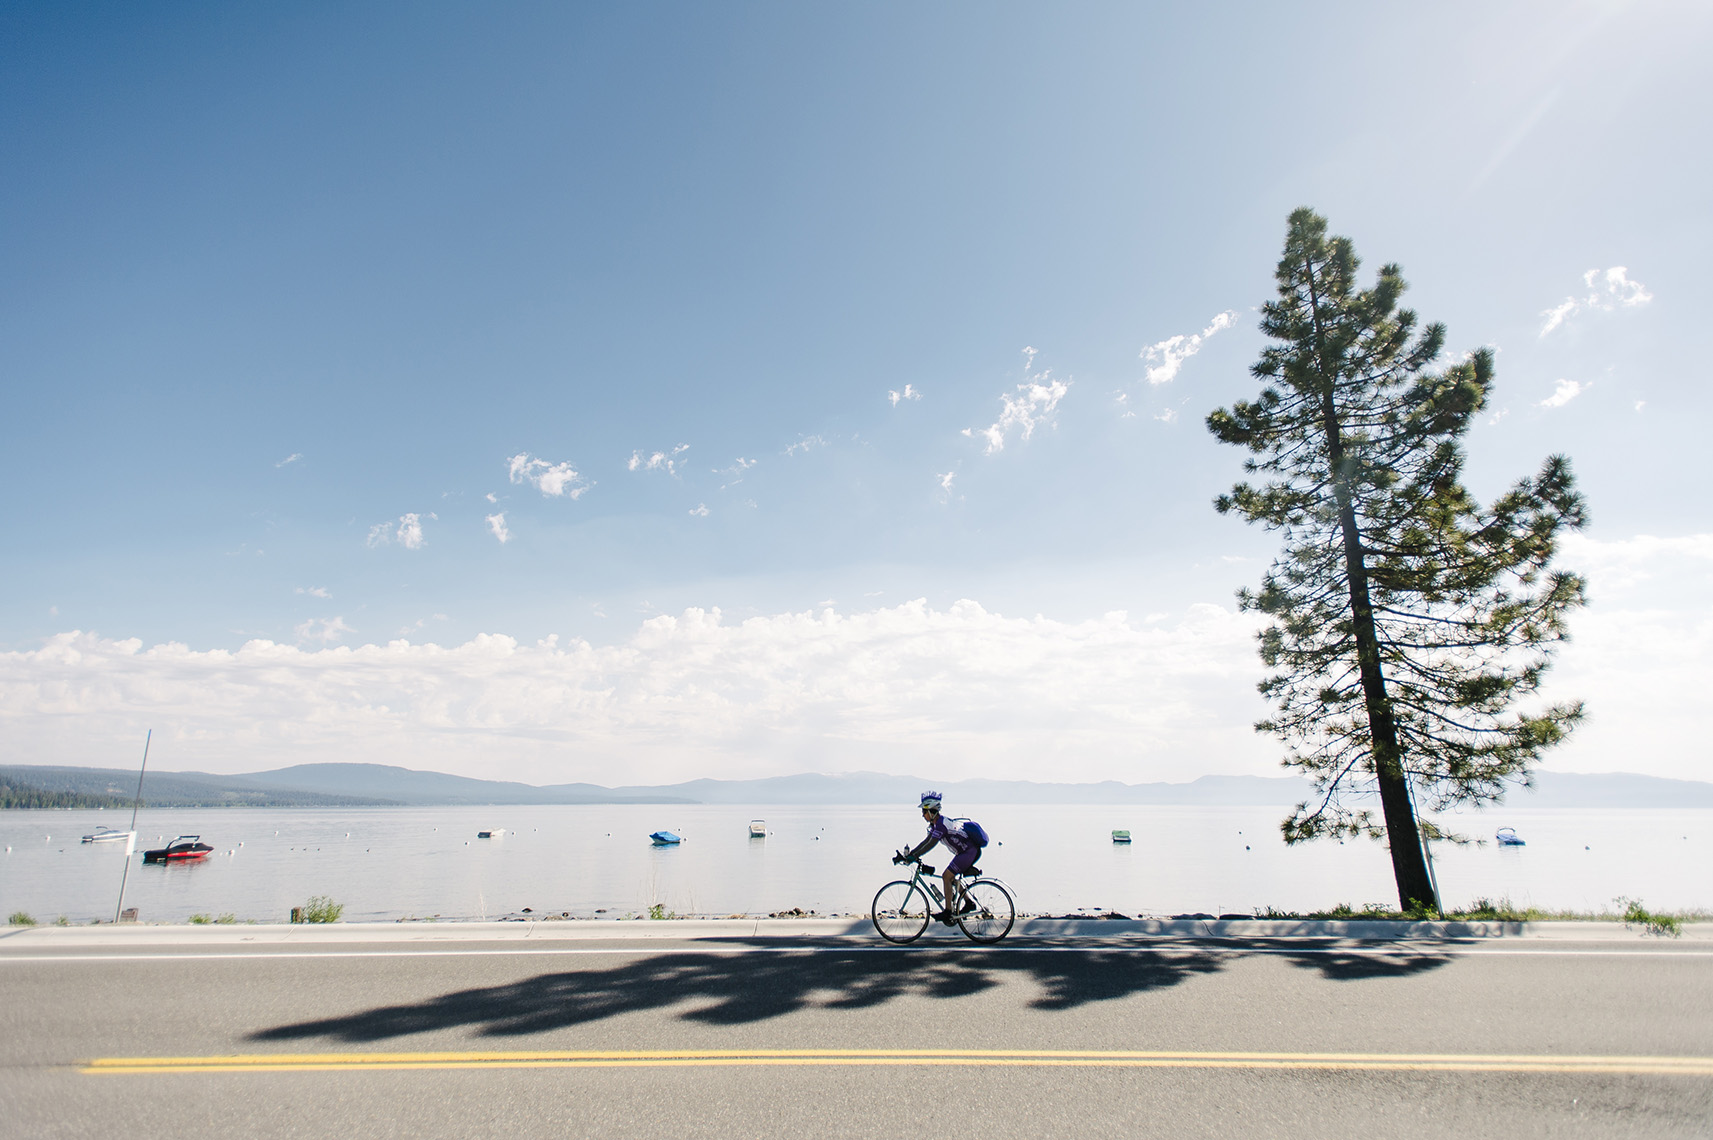 rider-team-in-training-ambbr-lake-tahoe